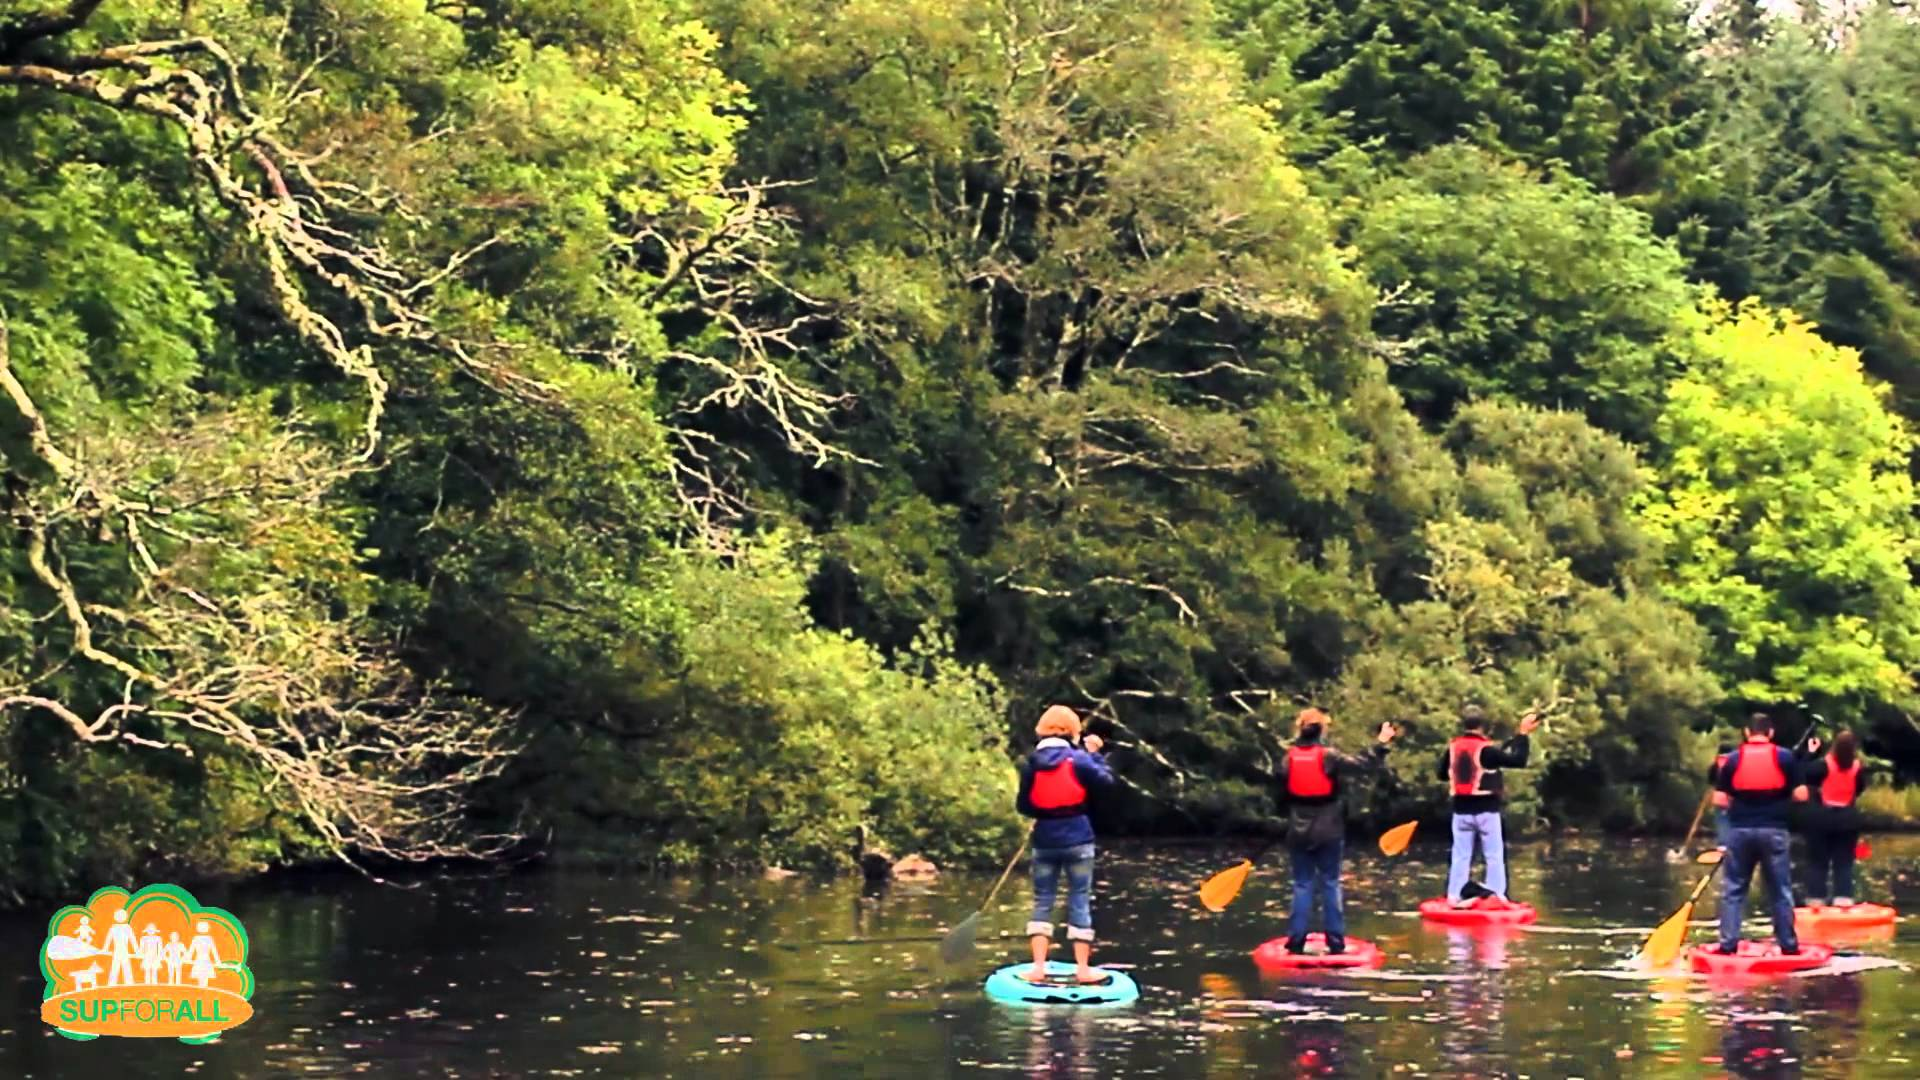 Stand Up Paddling in Ireland with SUP 4 ALL